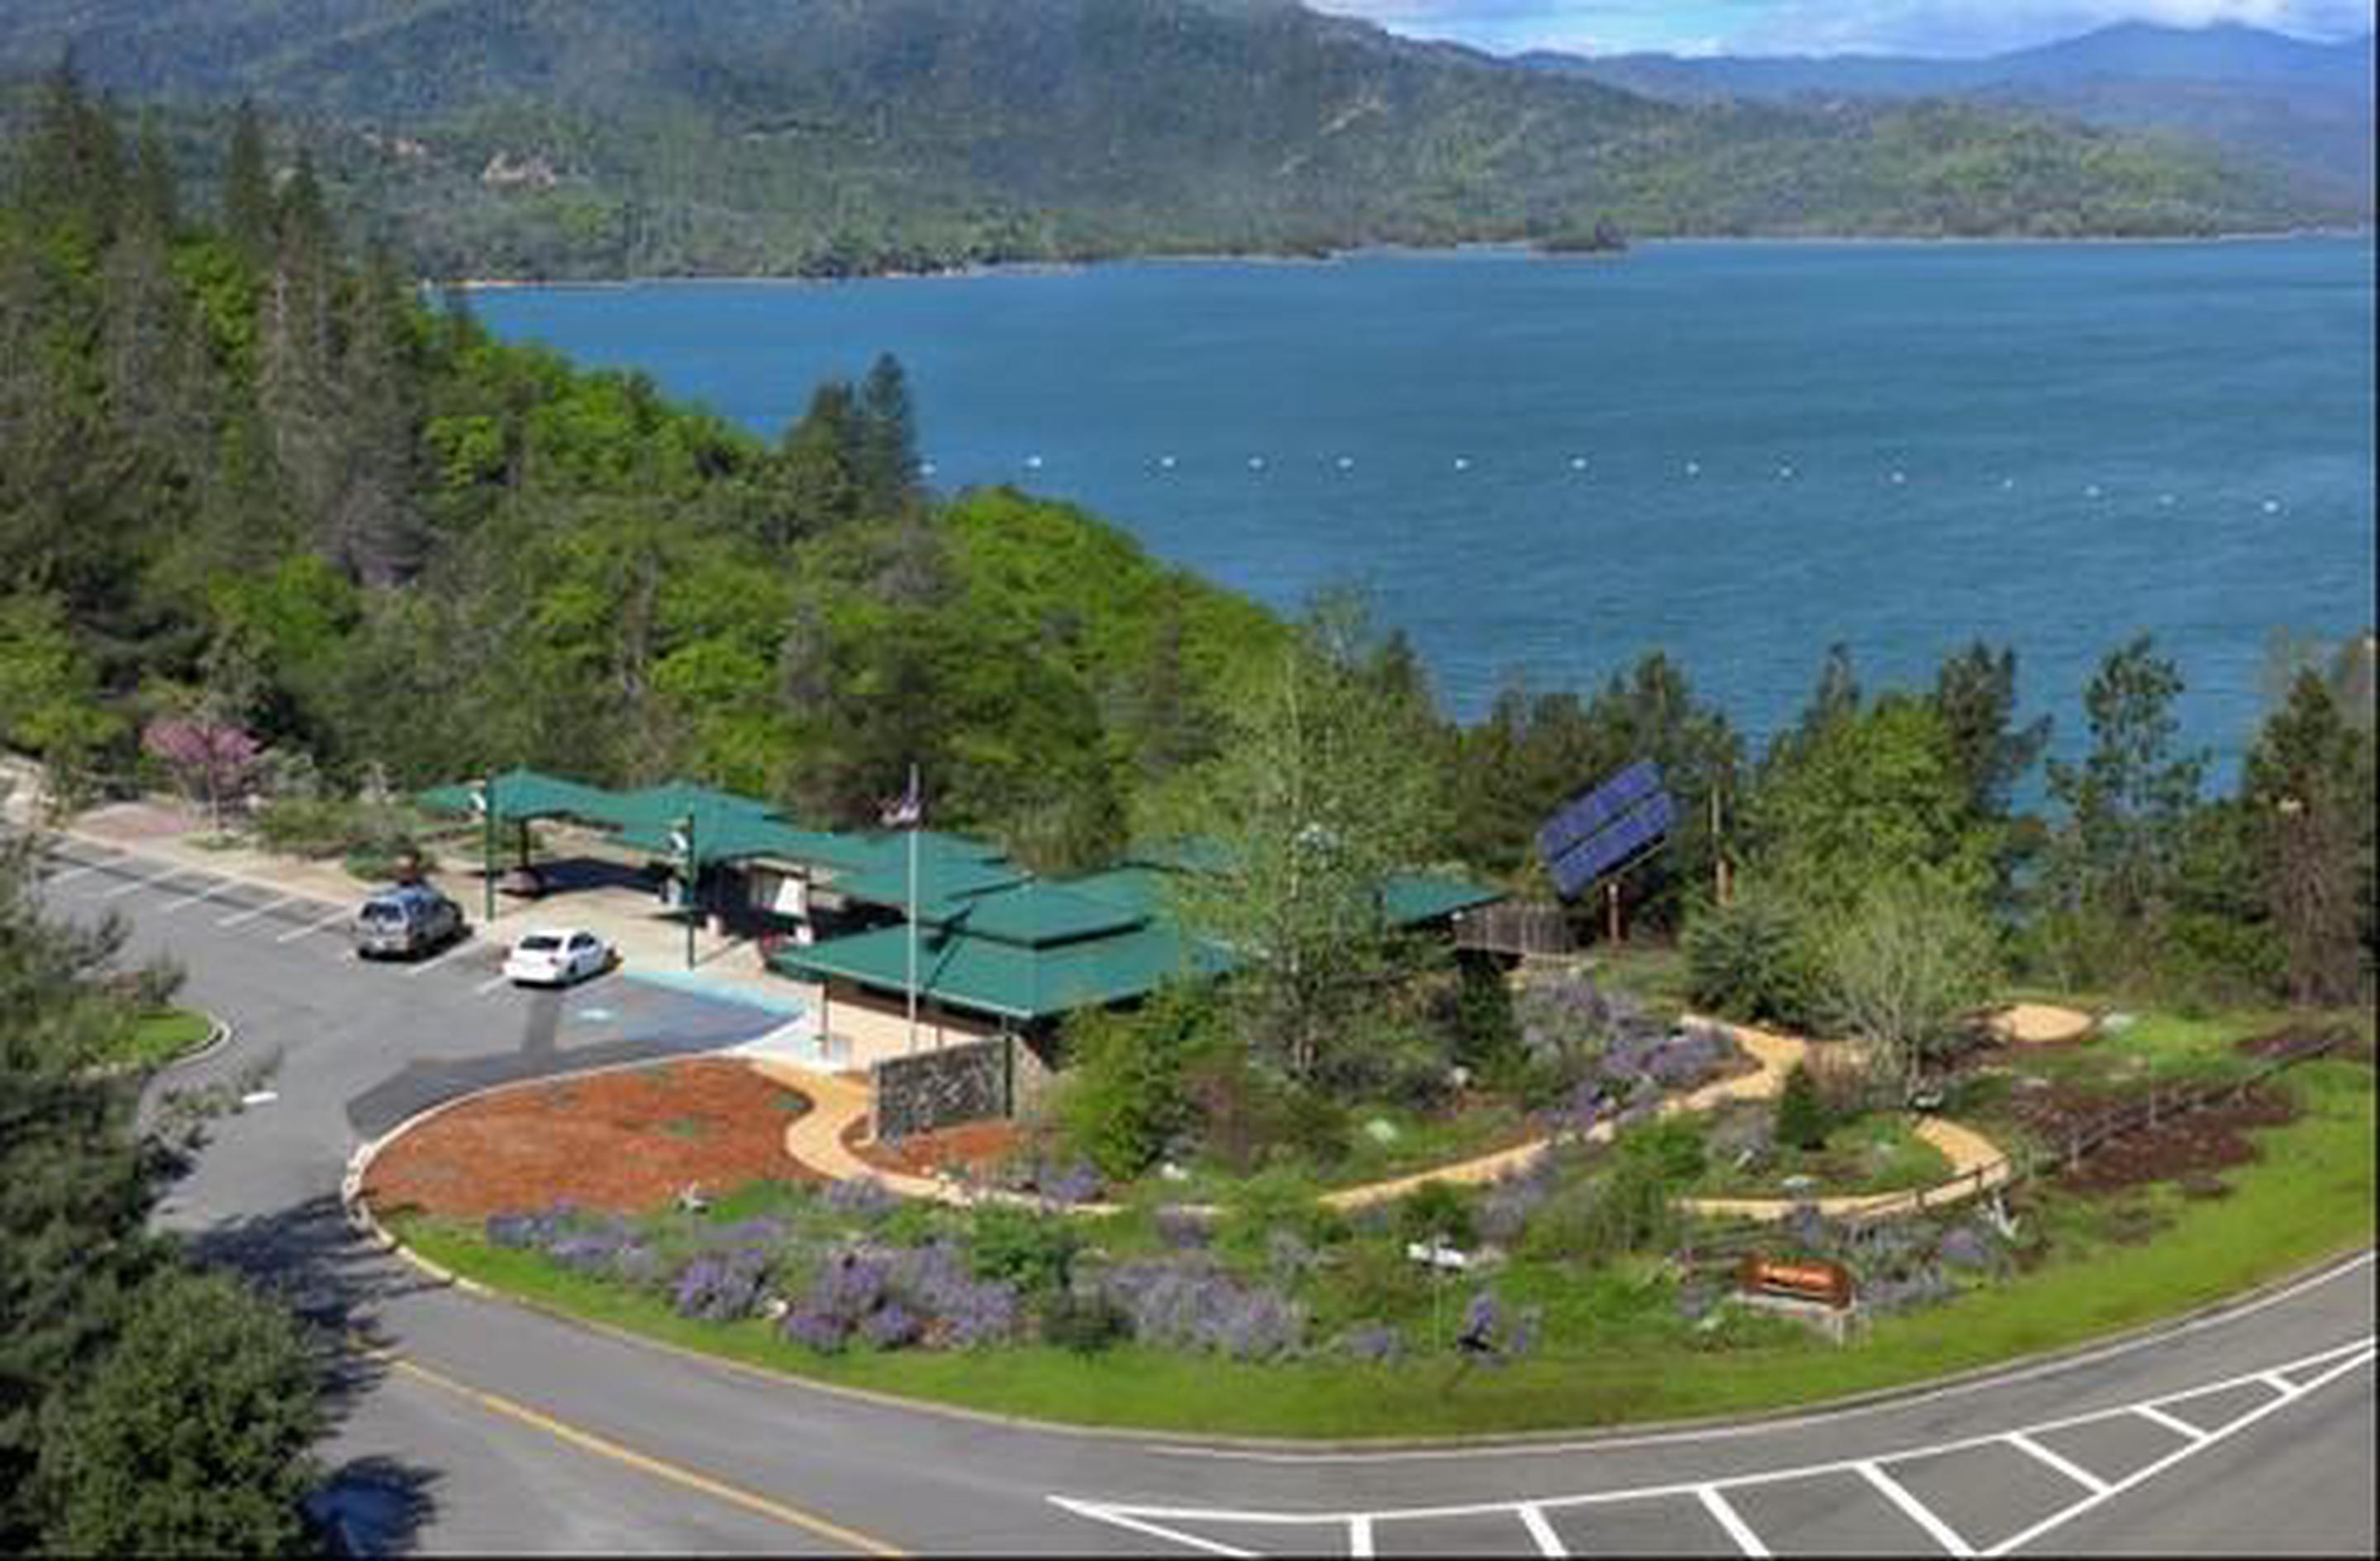 Aerial view of Whiskeytown NRA Visitors Center